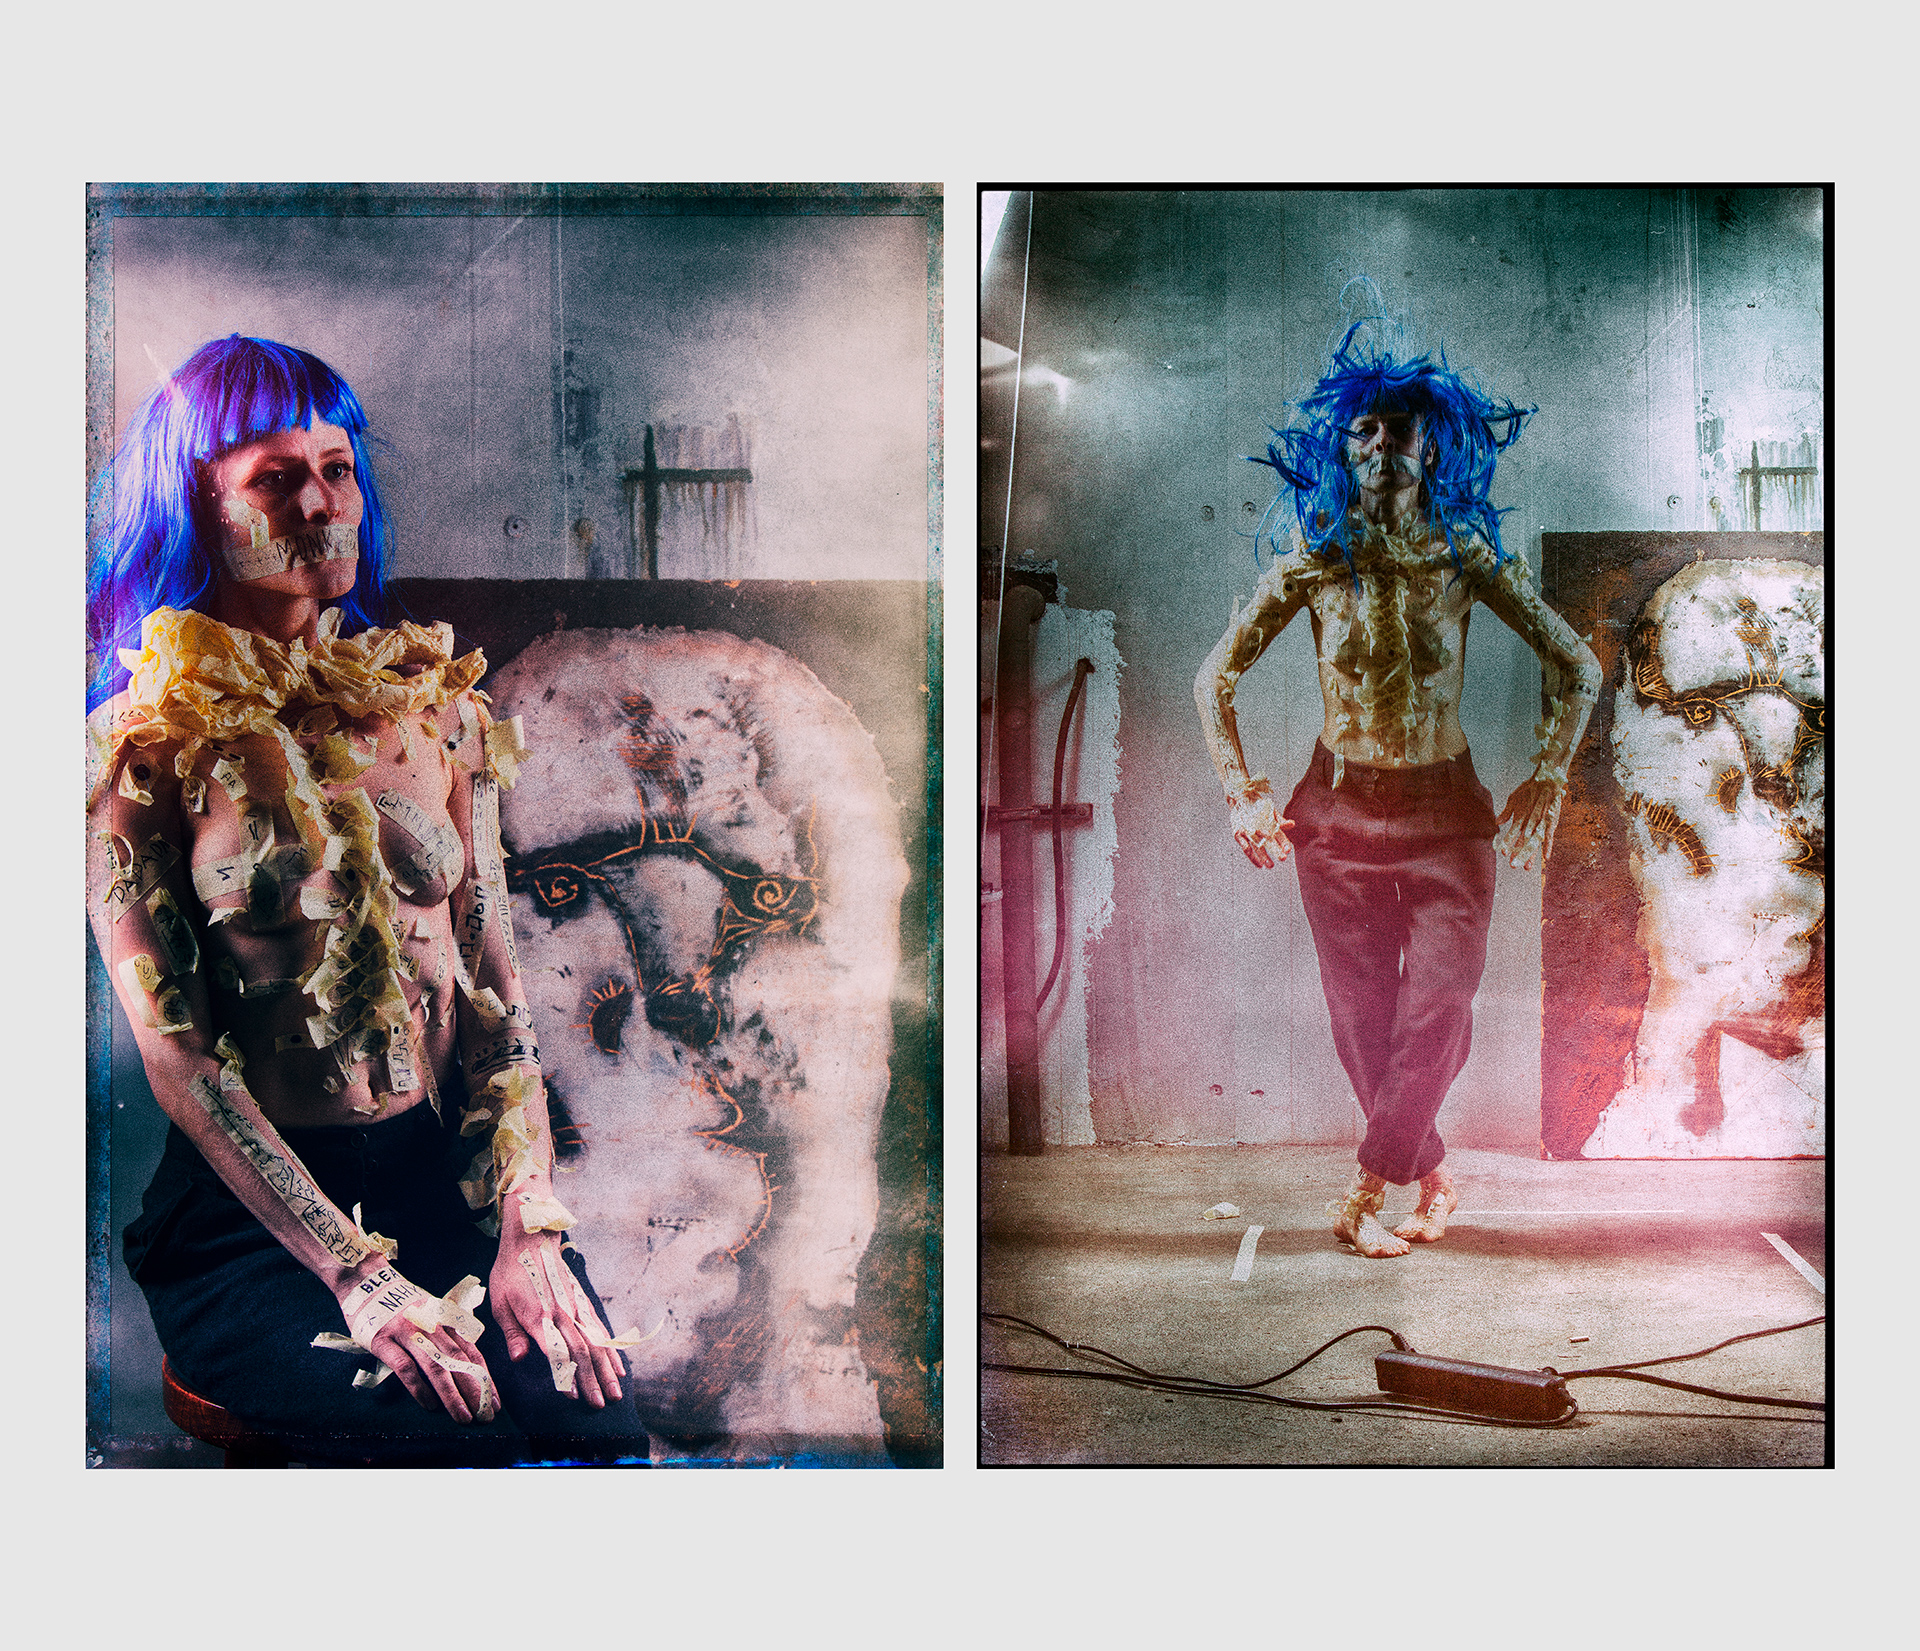 Anastasija Klee, Monkeydo studio photoset, Berlin, thrash, photoset, art, model, weird, creep, strange, fashion